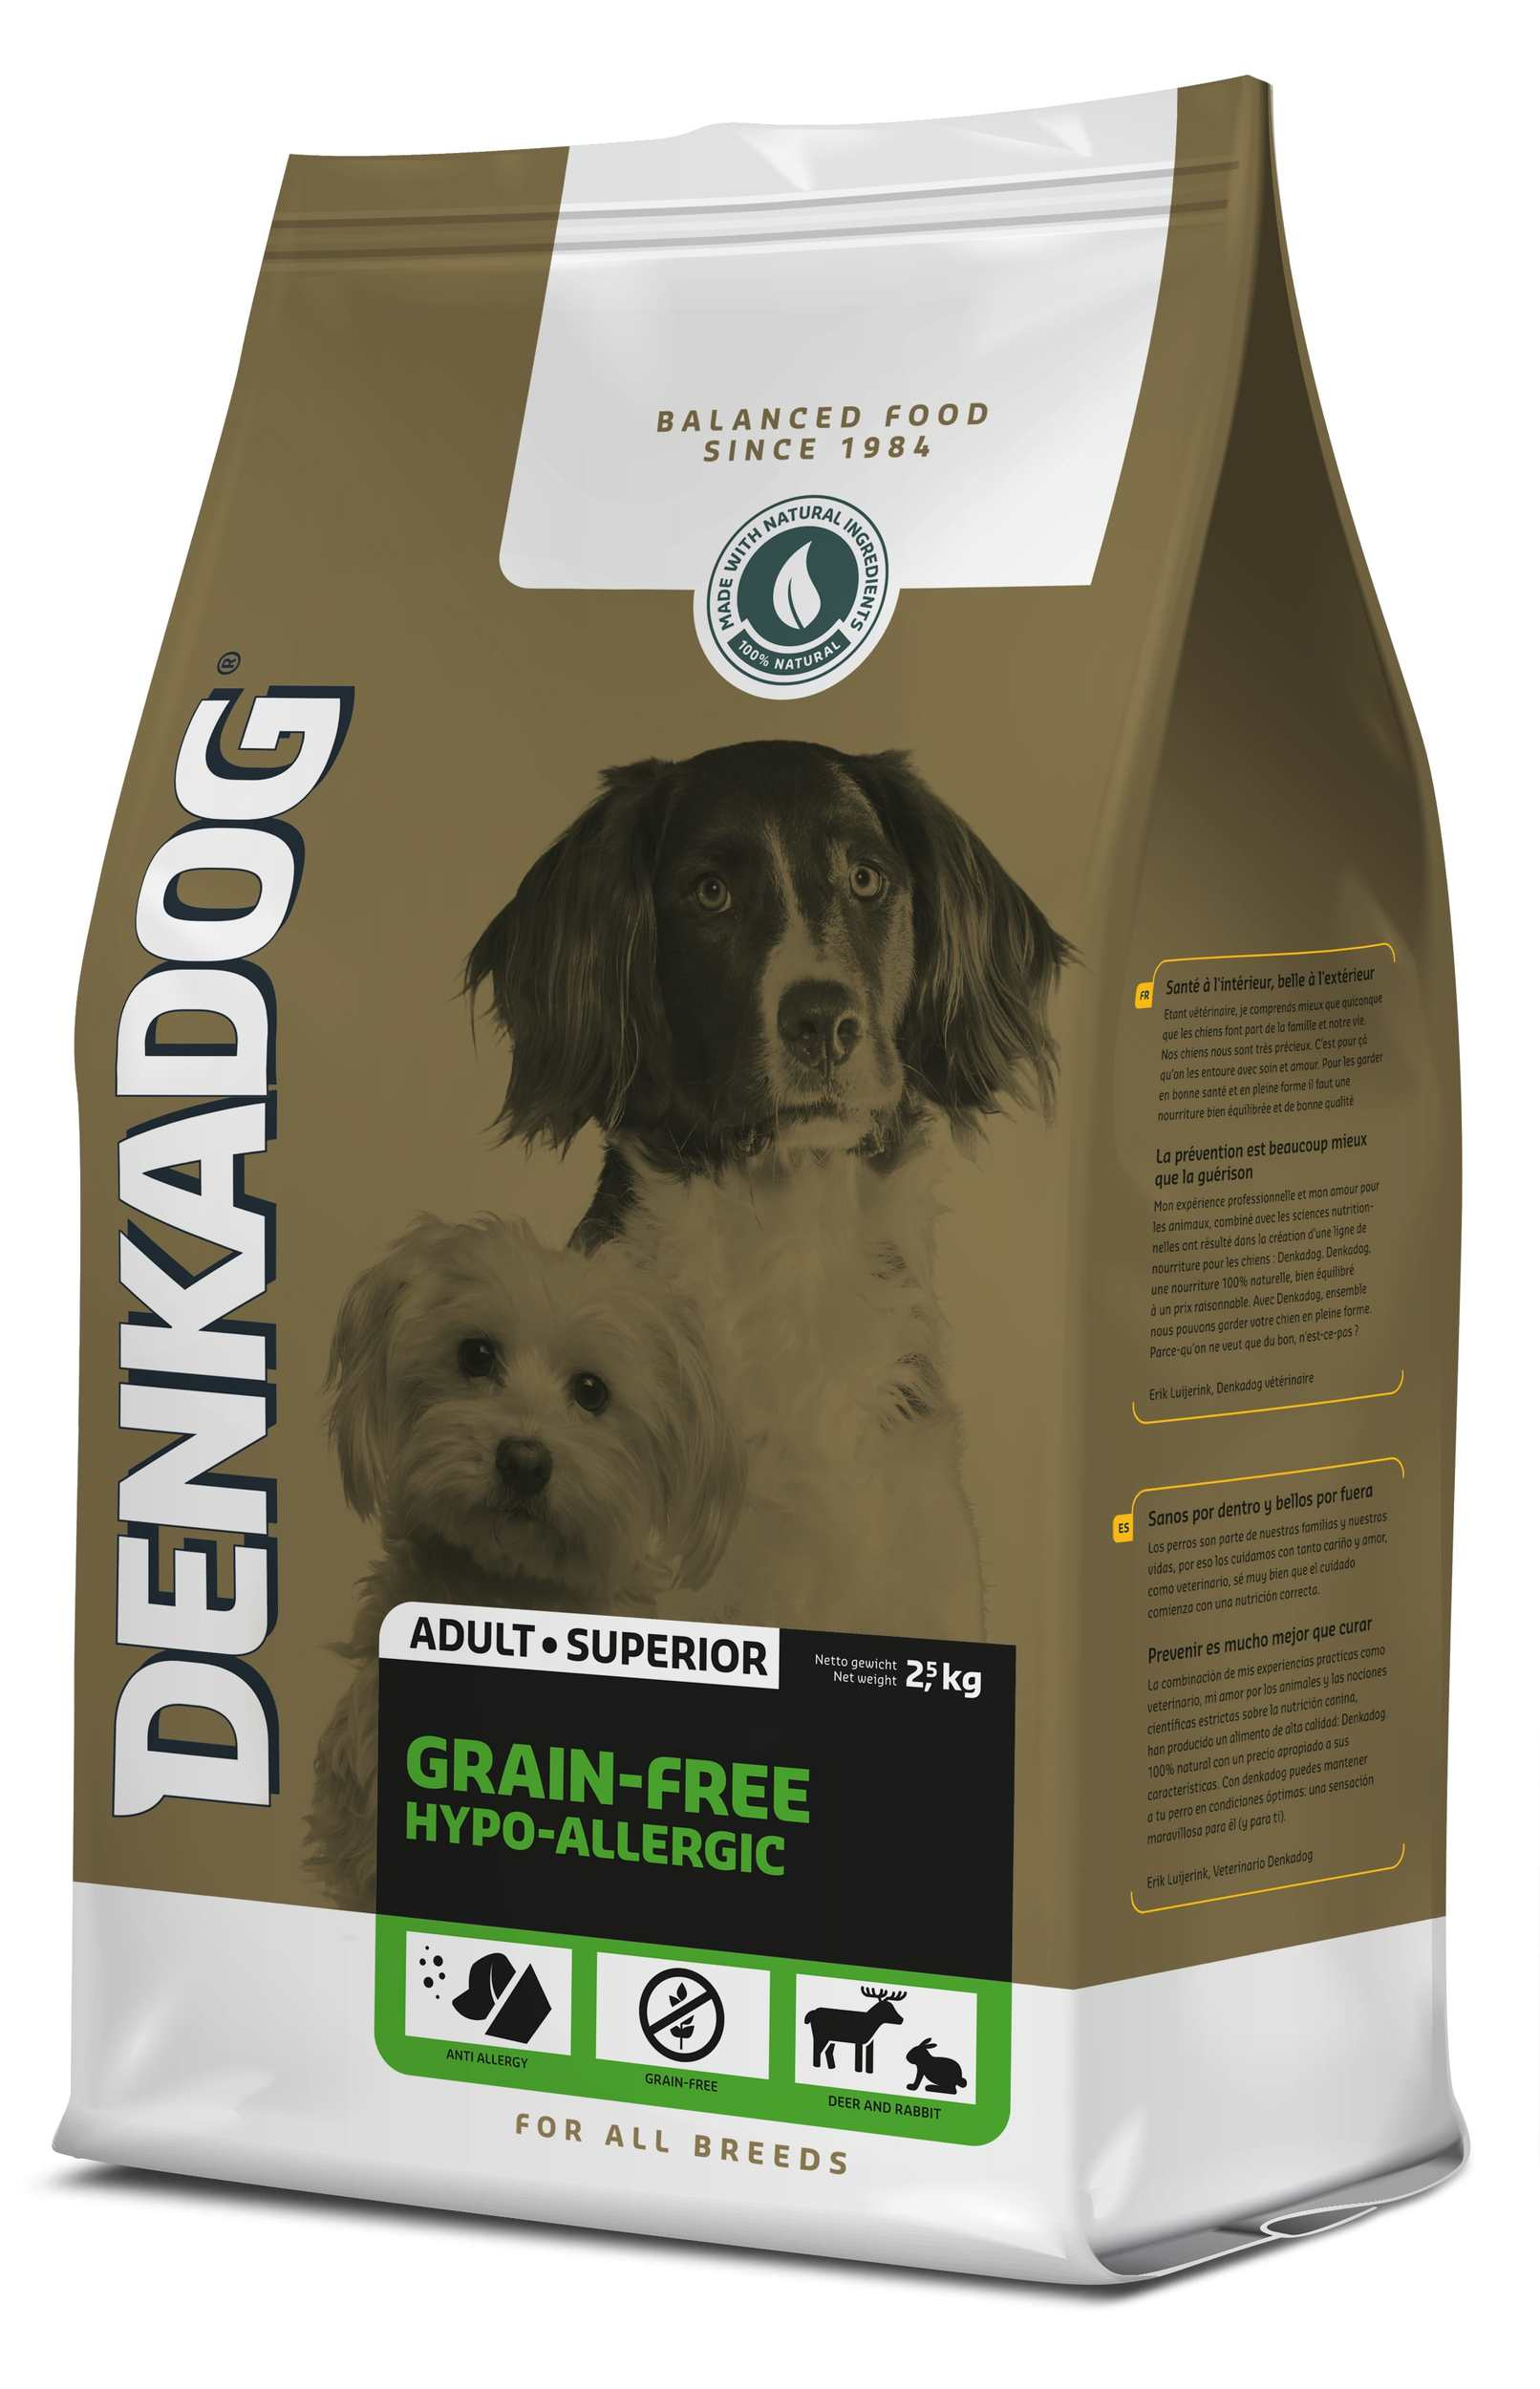 Denkadog Grain-Free Hypo-Allergic